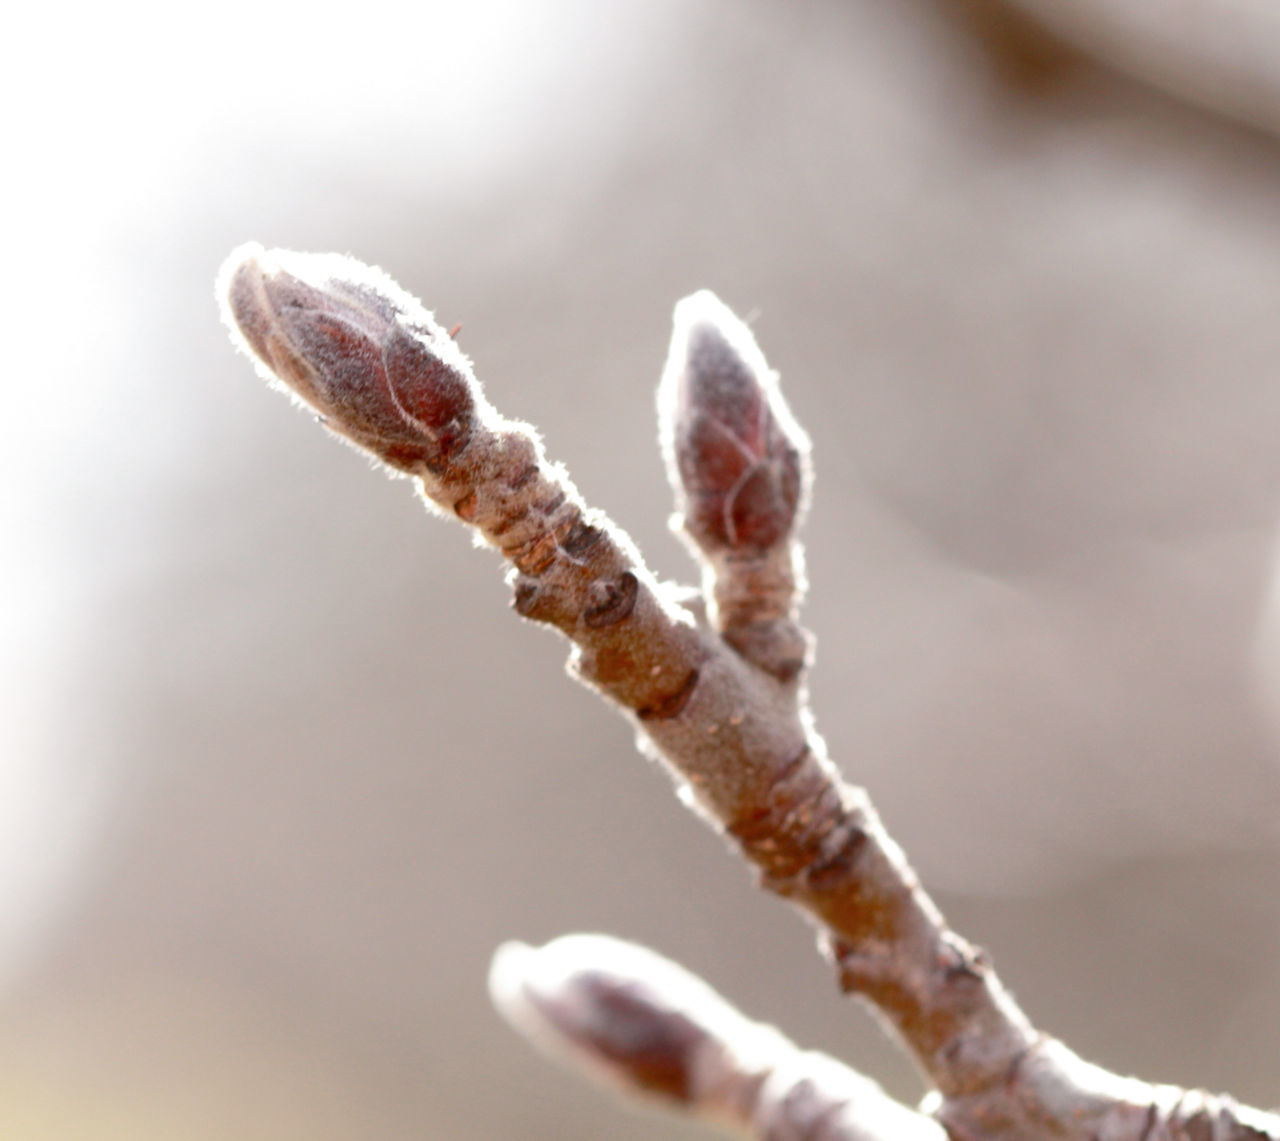 nature, close-up, day, growth, outdoors, no people, plant, focus on foreground, beauty in nature, fragility